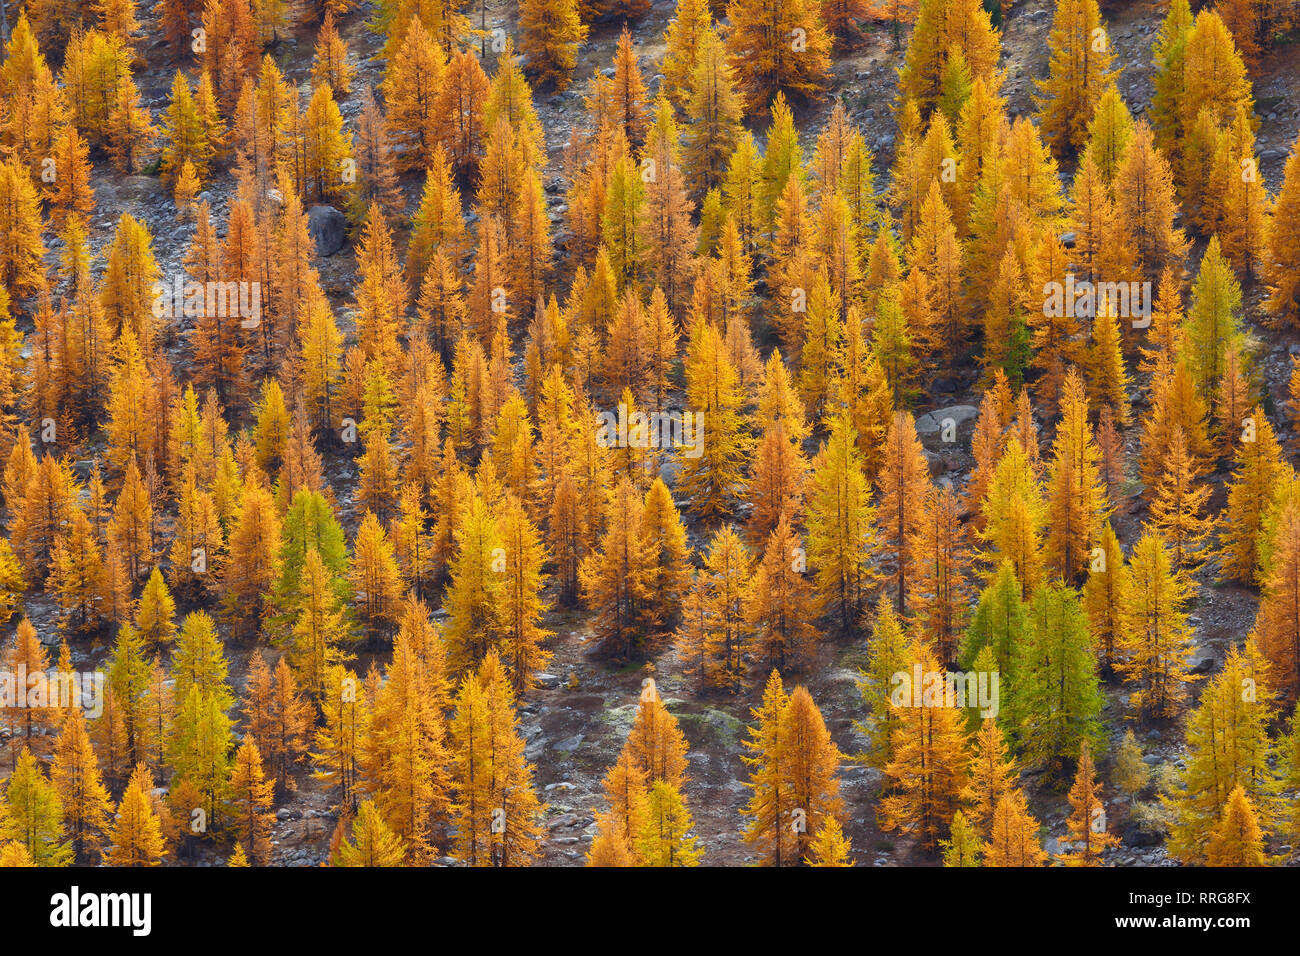 botany, coniferous forest in autumn, Switzerland, Additional-Rights-Clearance-Info-Not-Available - Stock Image